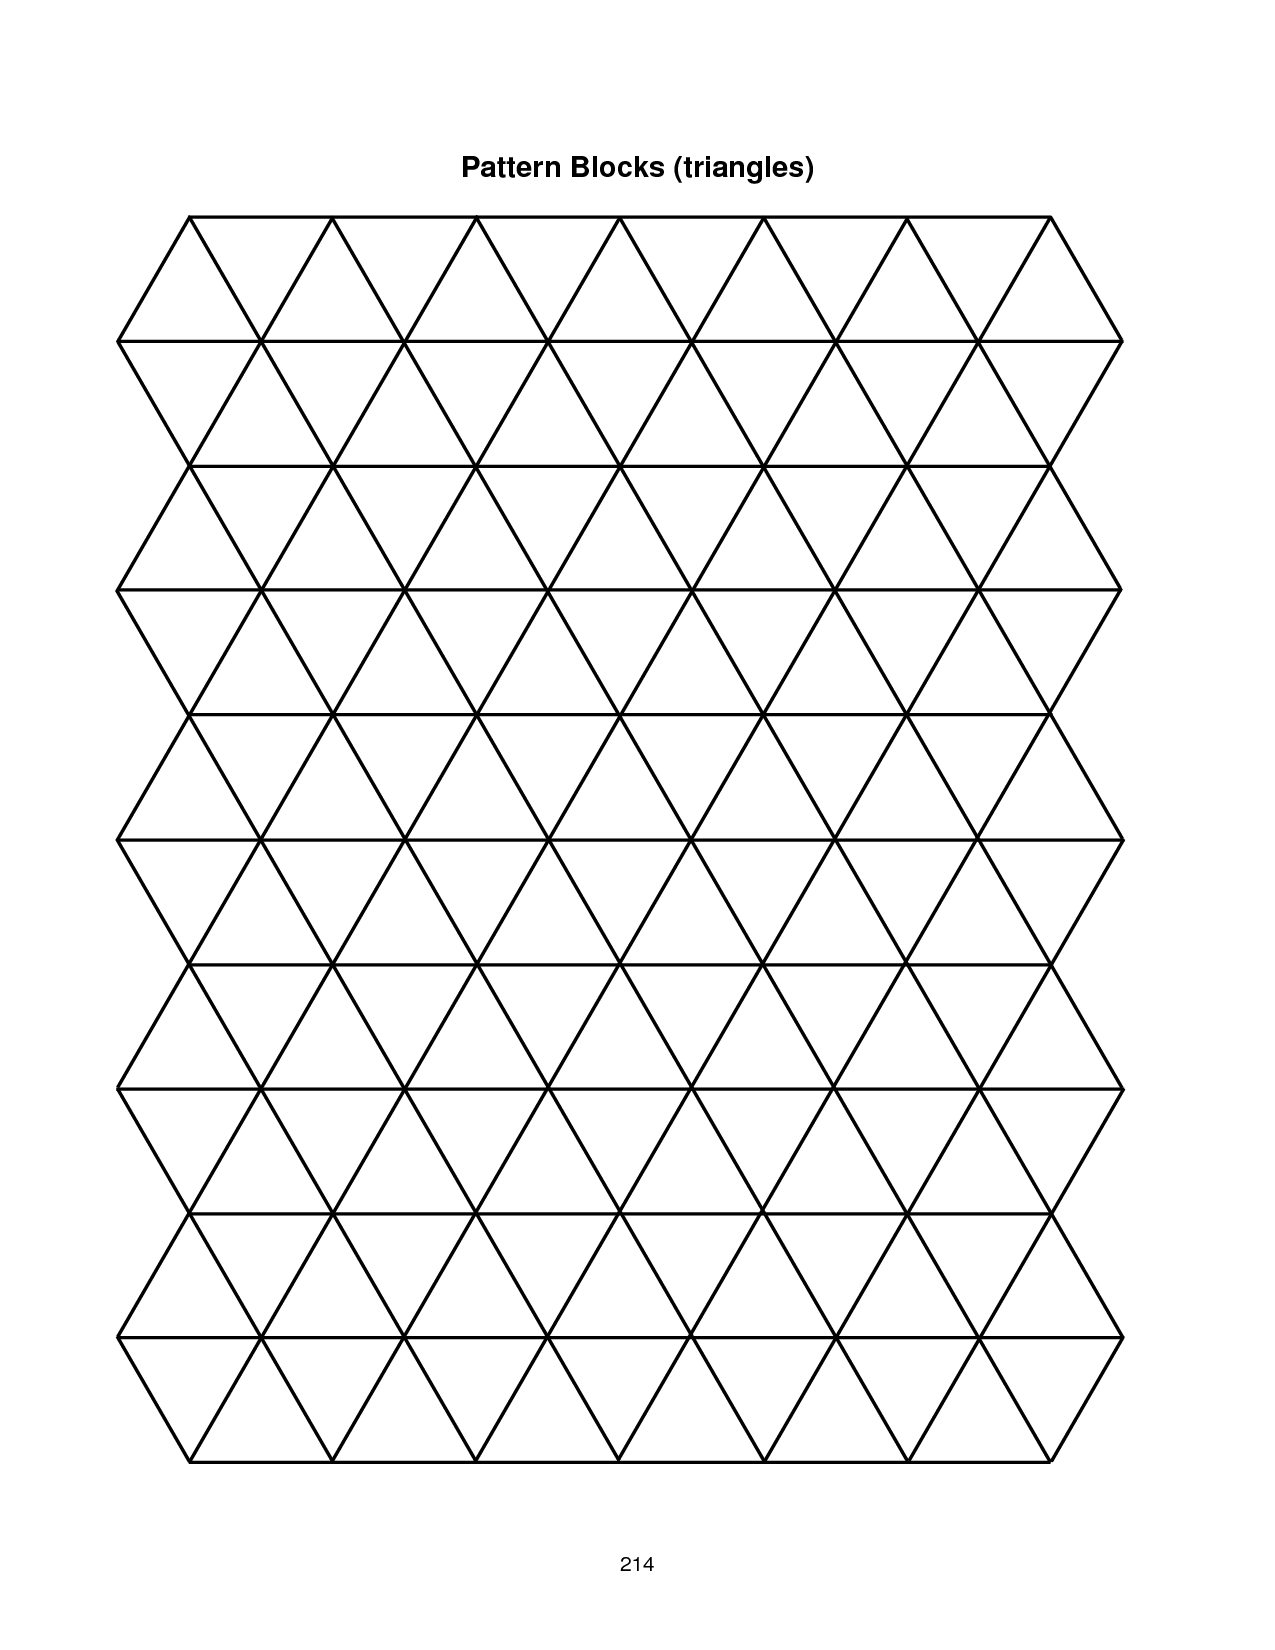 Pattern Block Template | Pattern Blocks (Triangles) 214 With Blank Pattern Block Templates